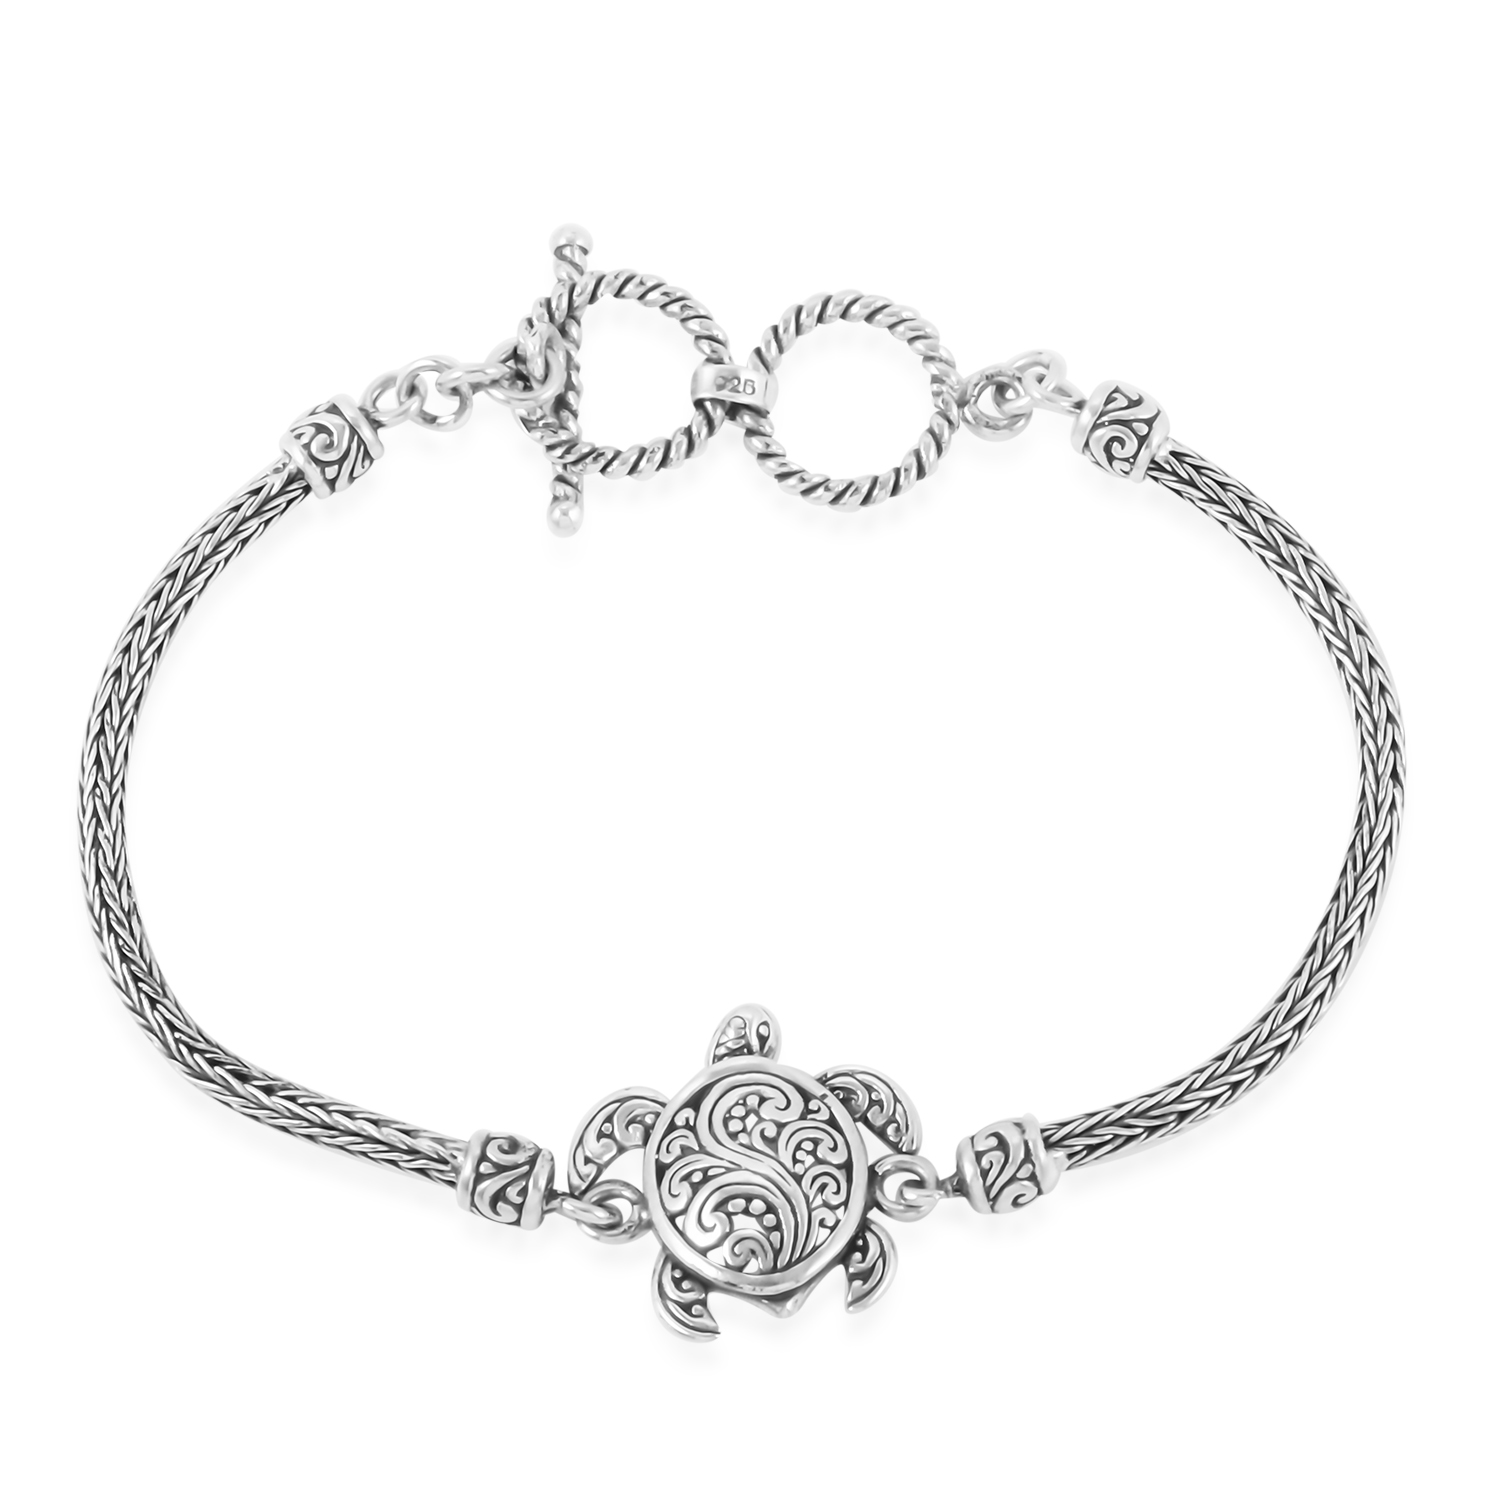 Bali Legacy Collection Sterling Silver Turtle Tulang Naga Bracelet 7 50 In 11 5 G